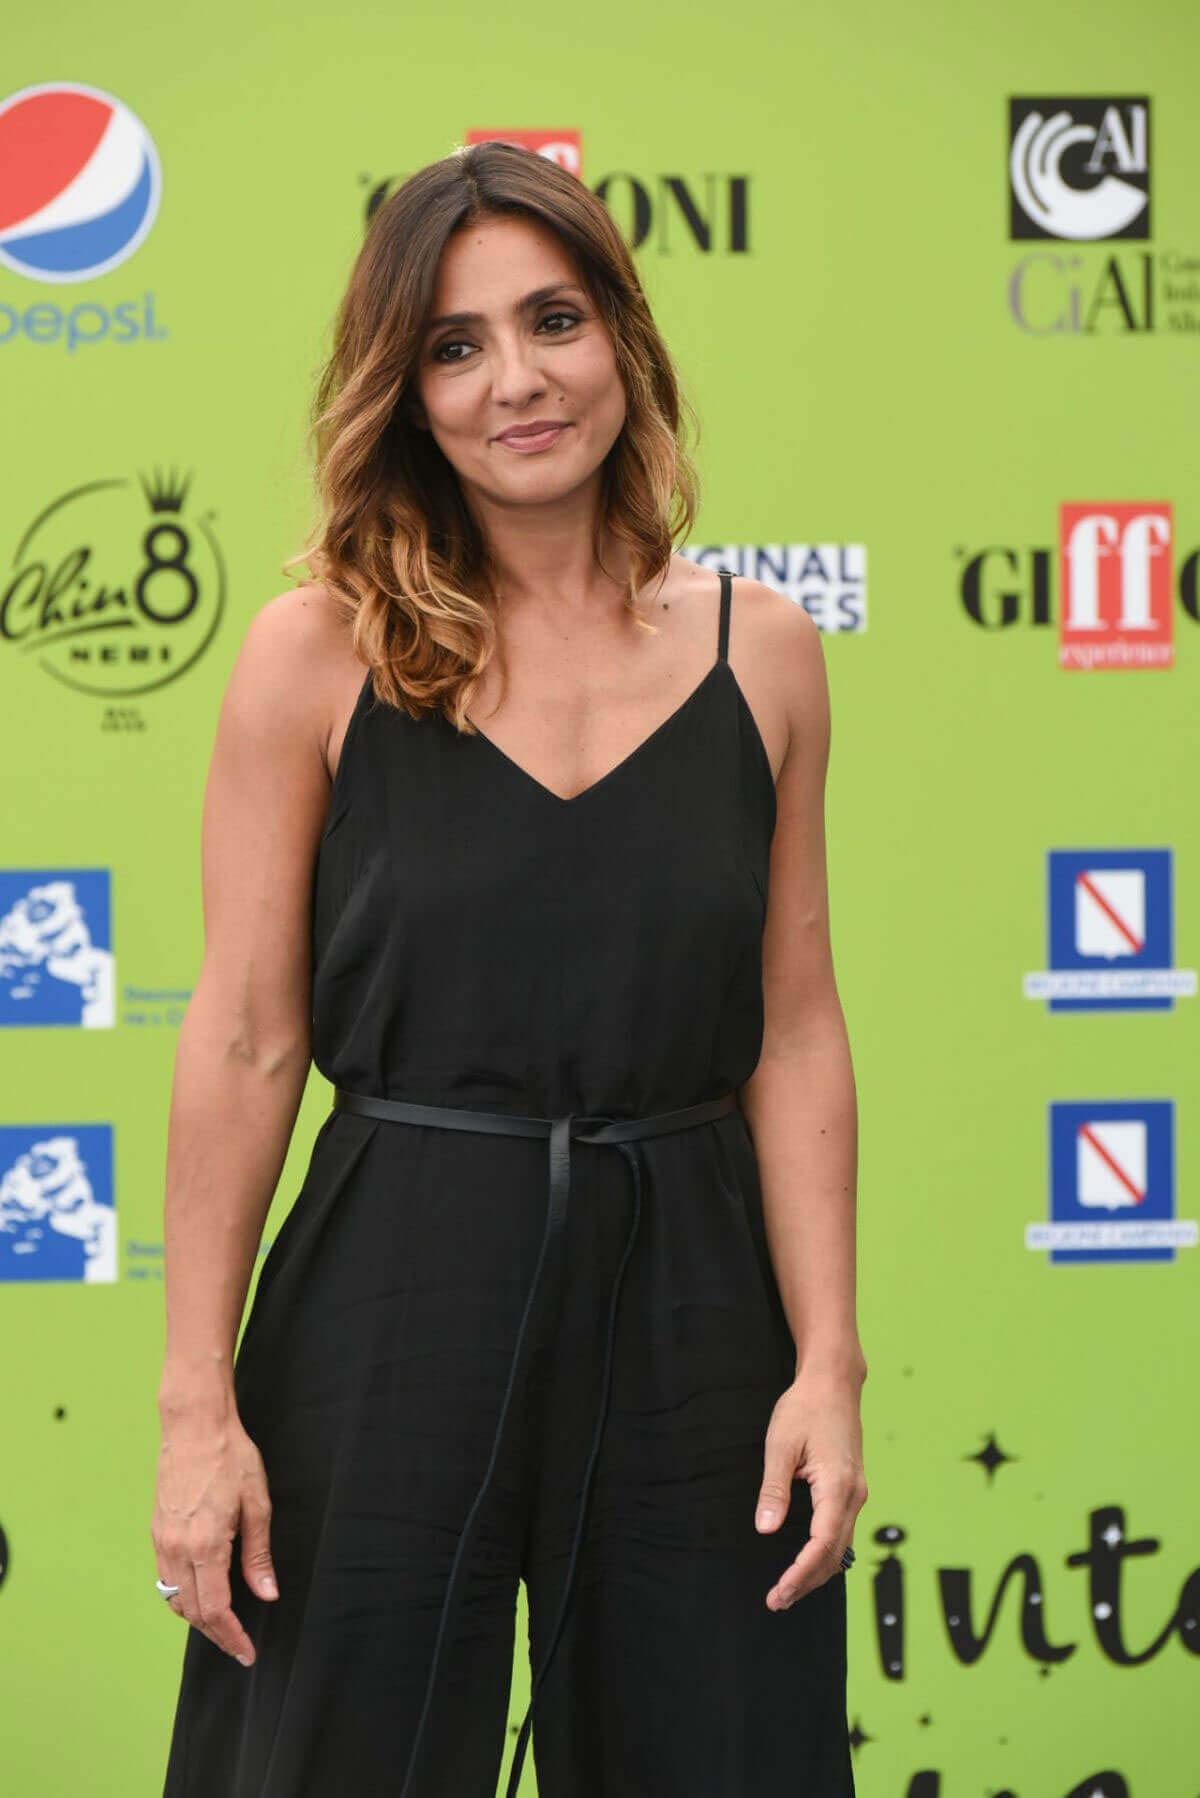 Ambra Angiolini Photos at Giffoni Film Festival in Giffoni Valle Piana